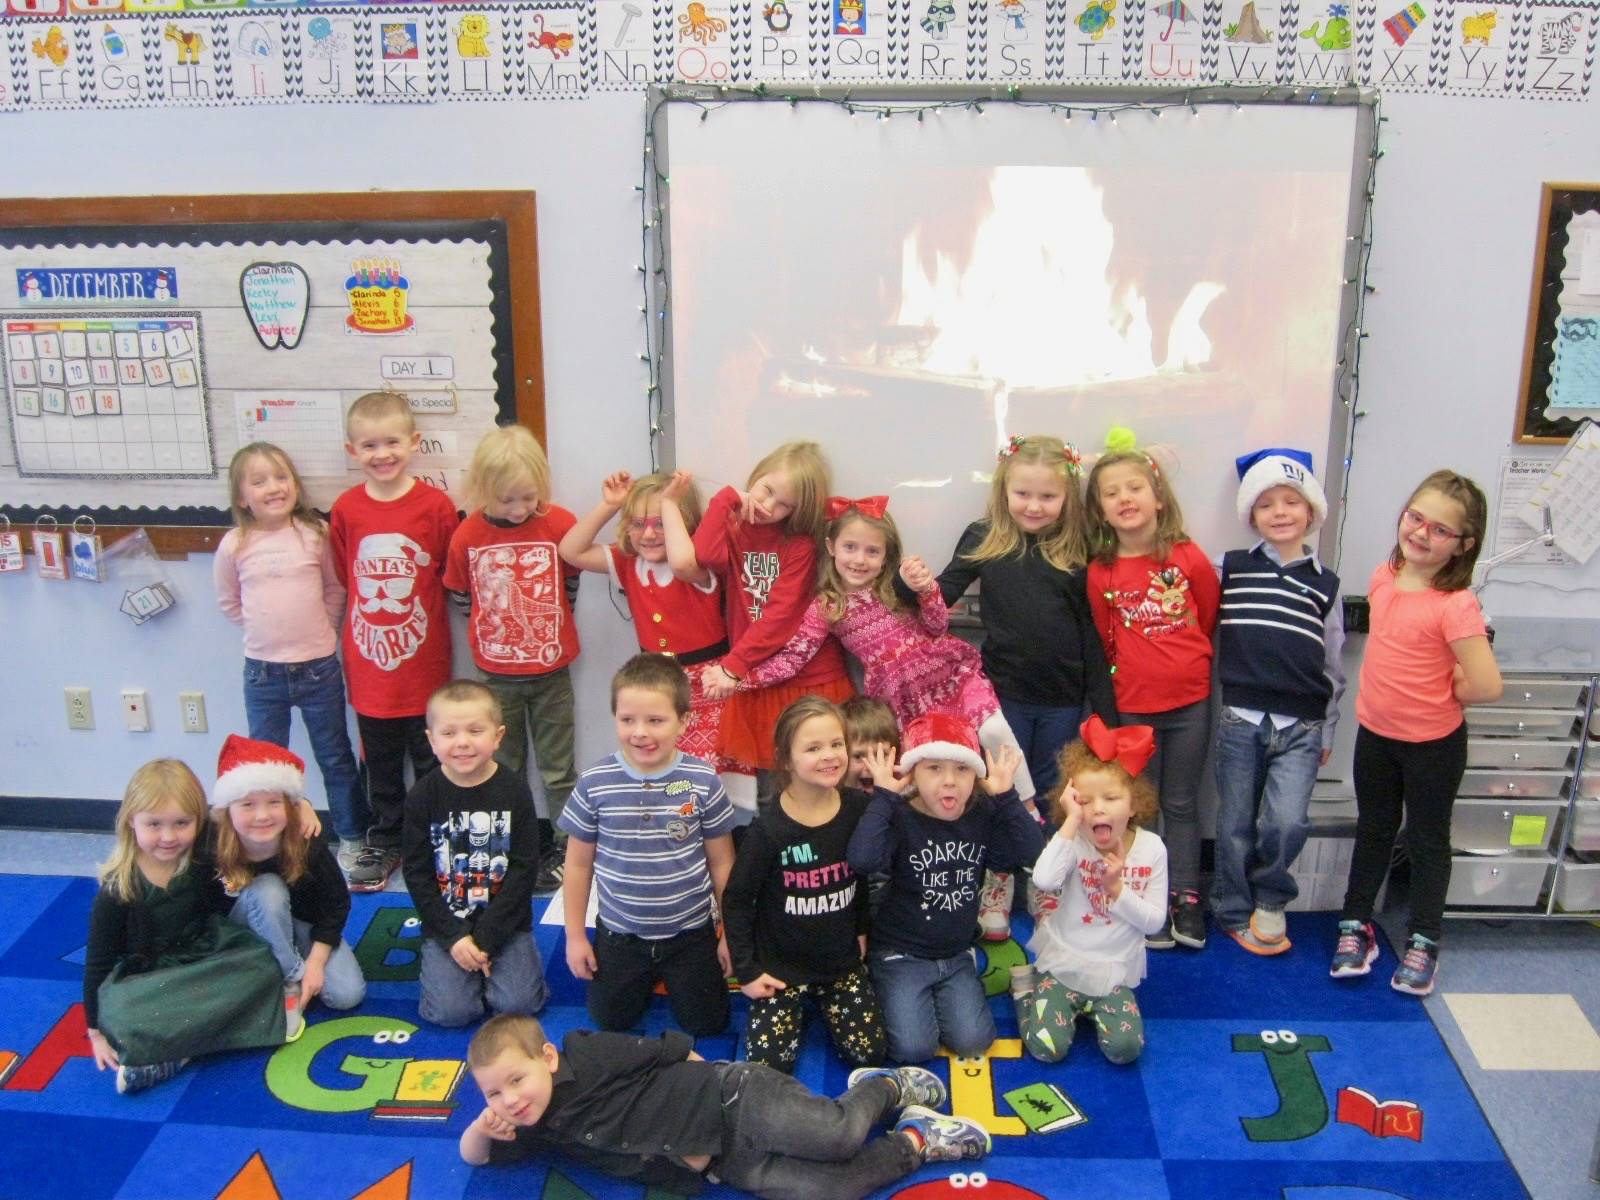 A class poses in their holiday clothes.